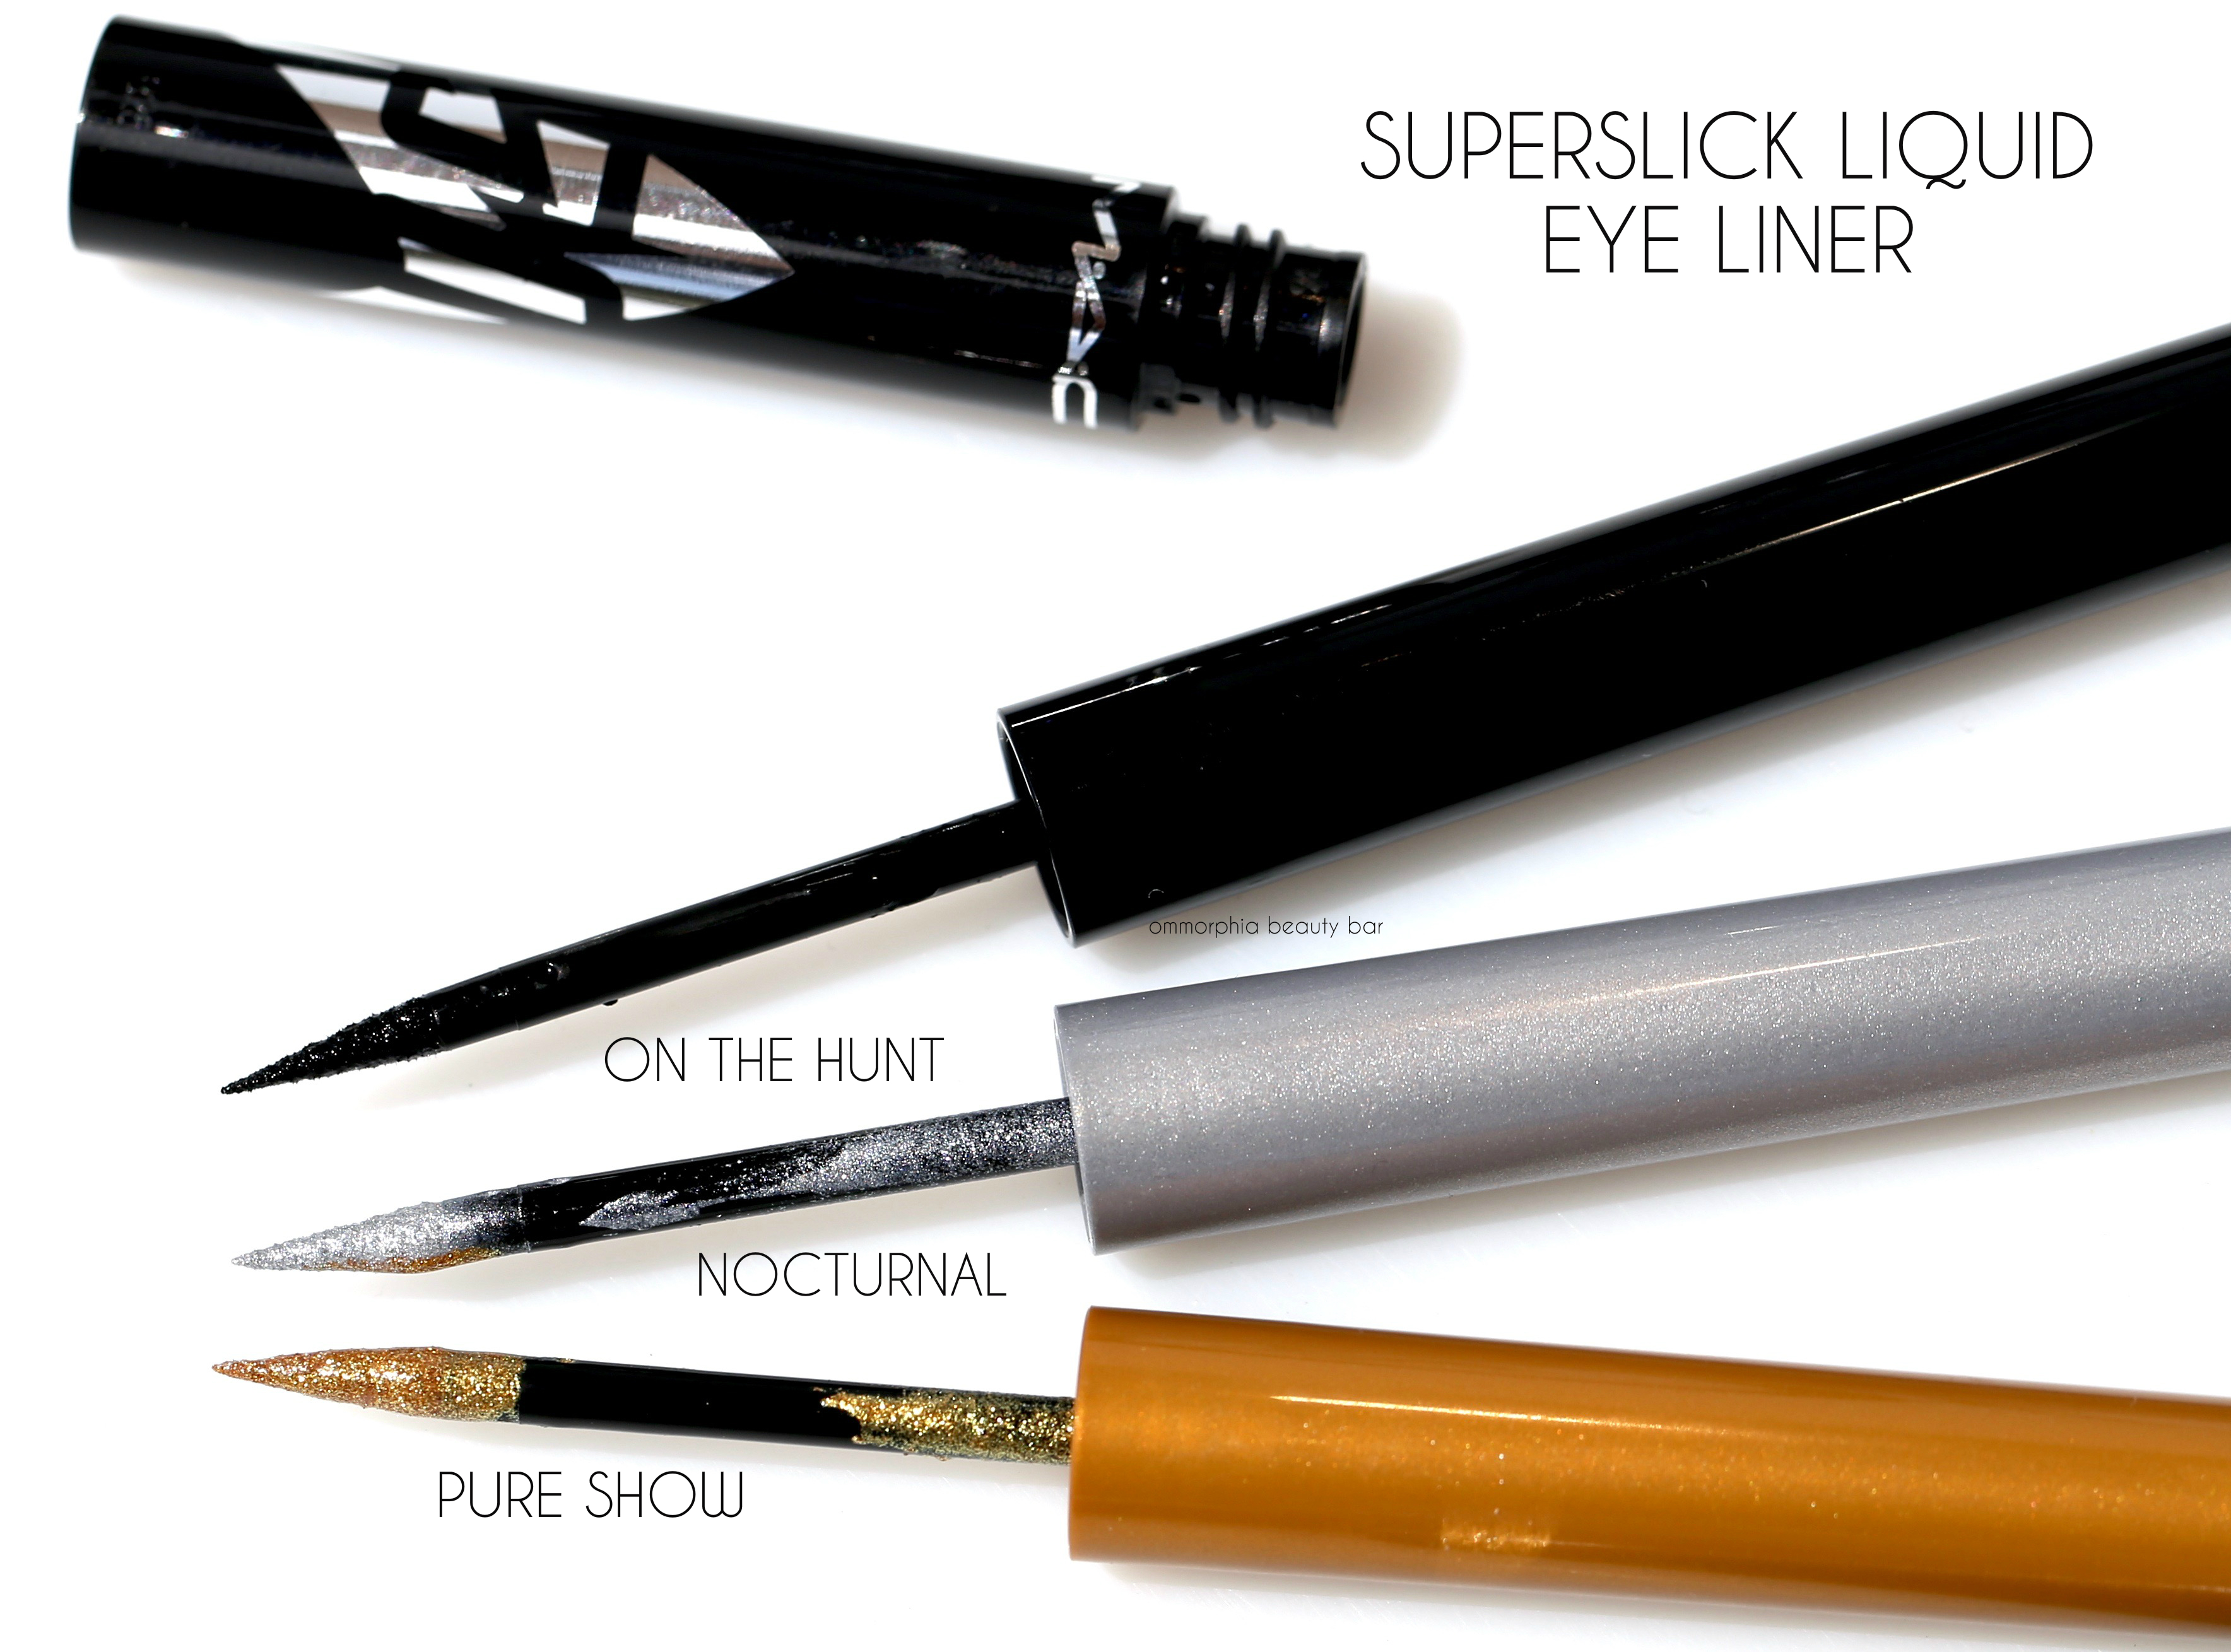 Eyeliner Enthusiastic Double-head Black Liquid Eyeliner Pencil Easy To Wear Makeup Star Heart Moon Flower Stamp Waterproof Mark Seal Tattoo Eye Liner Available In Various Designs And Specifications For Your Selection